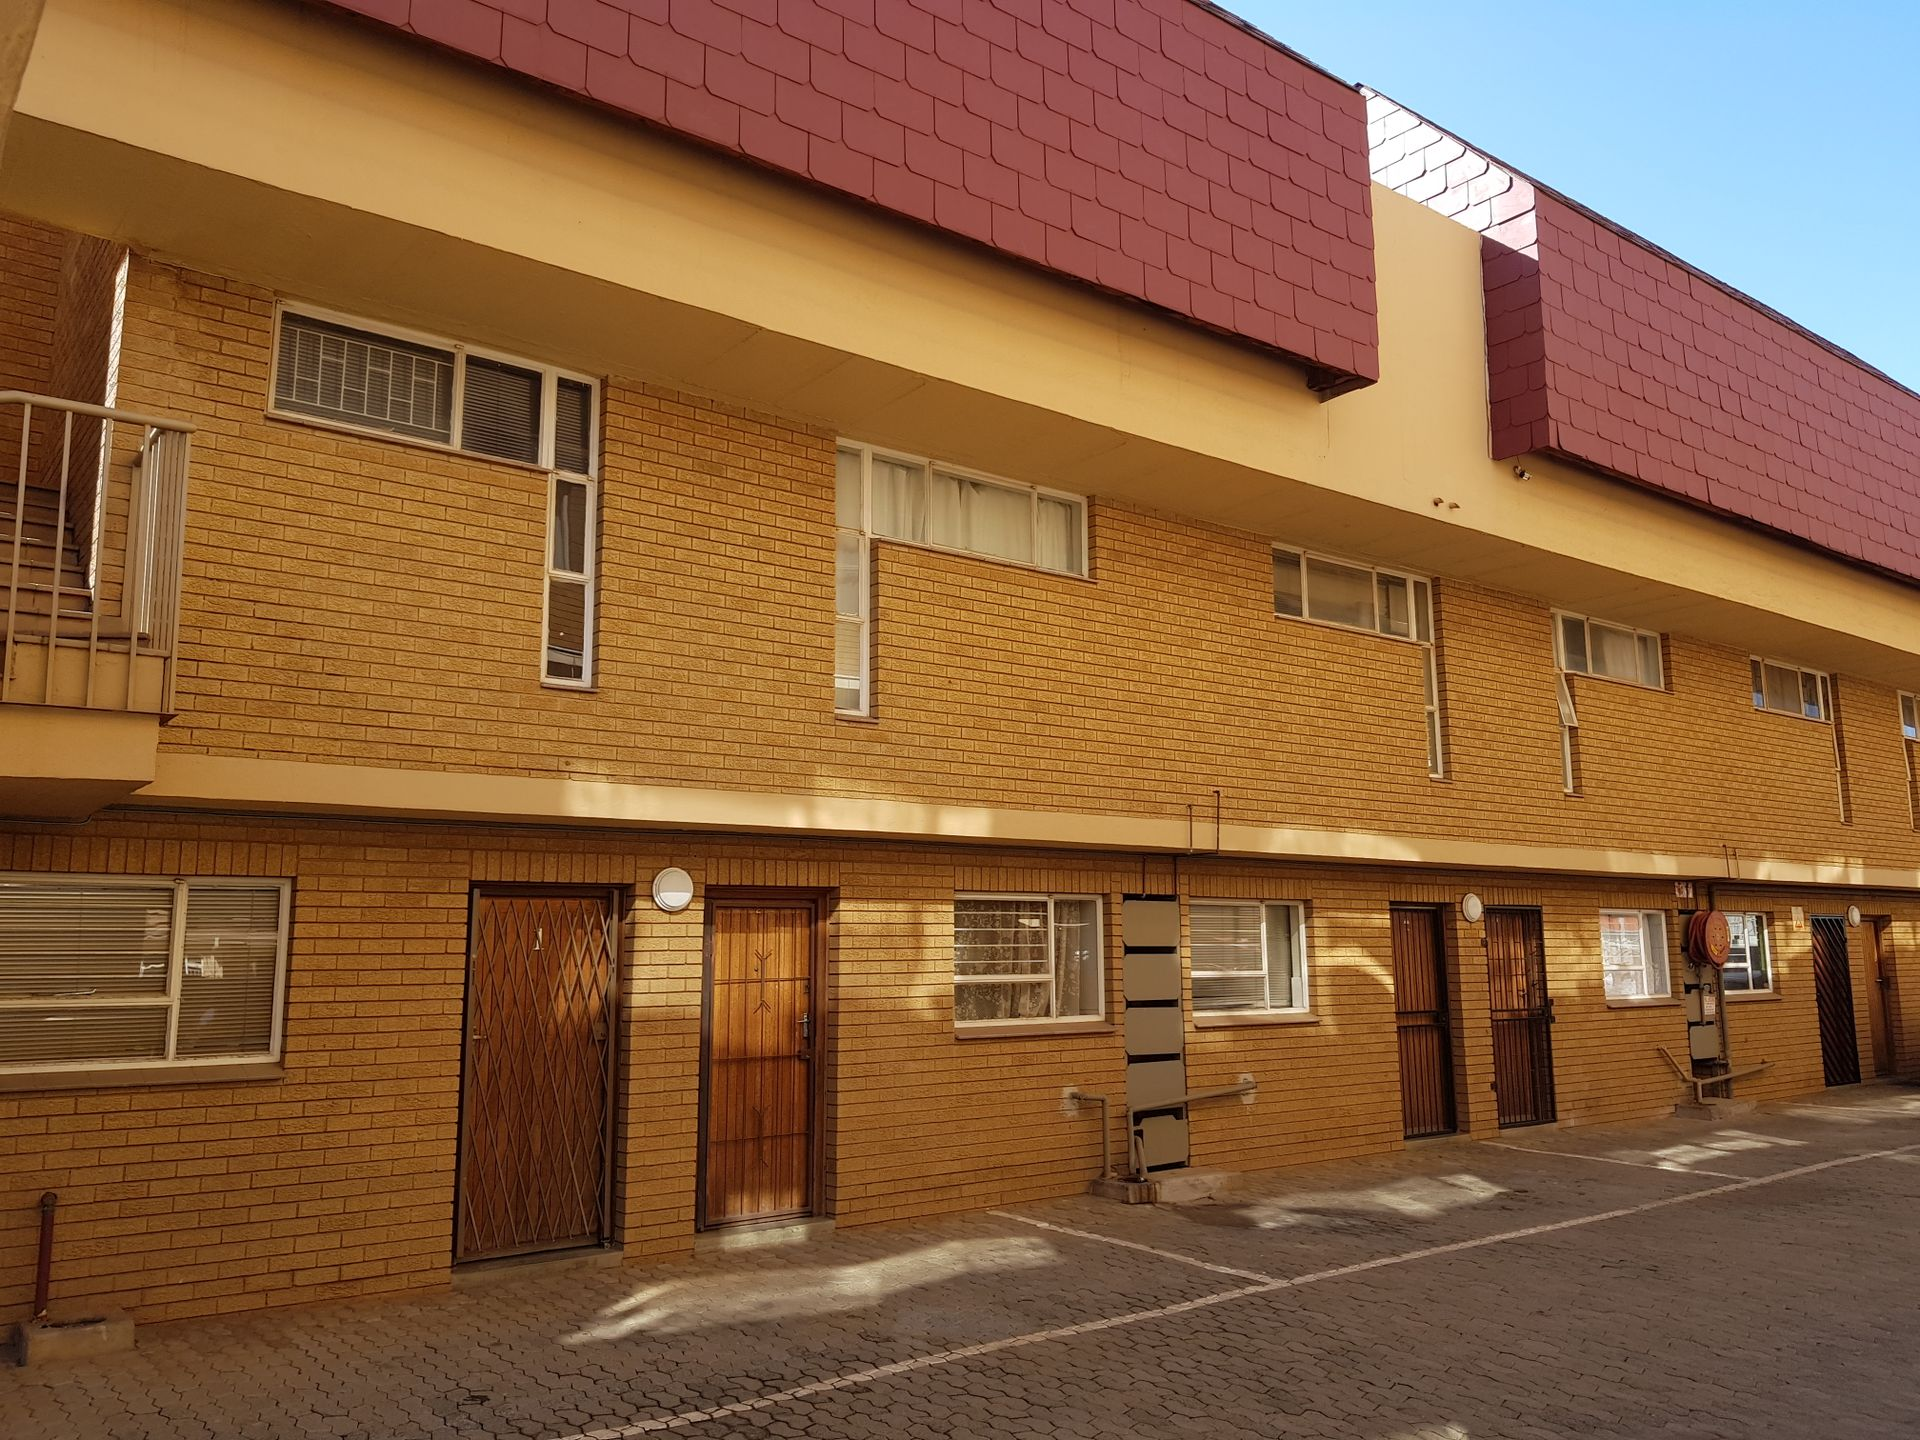 Potchefstroom Central property for sale. Ref No: 13498385. Picture no 2